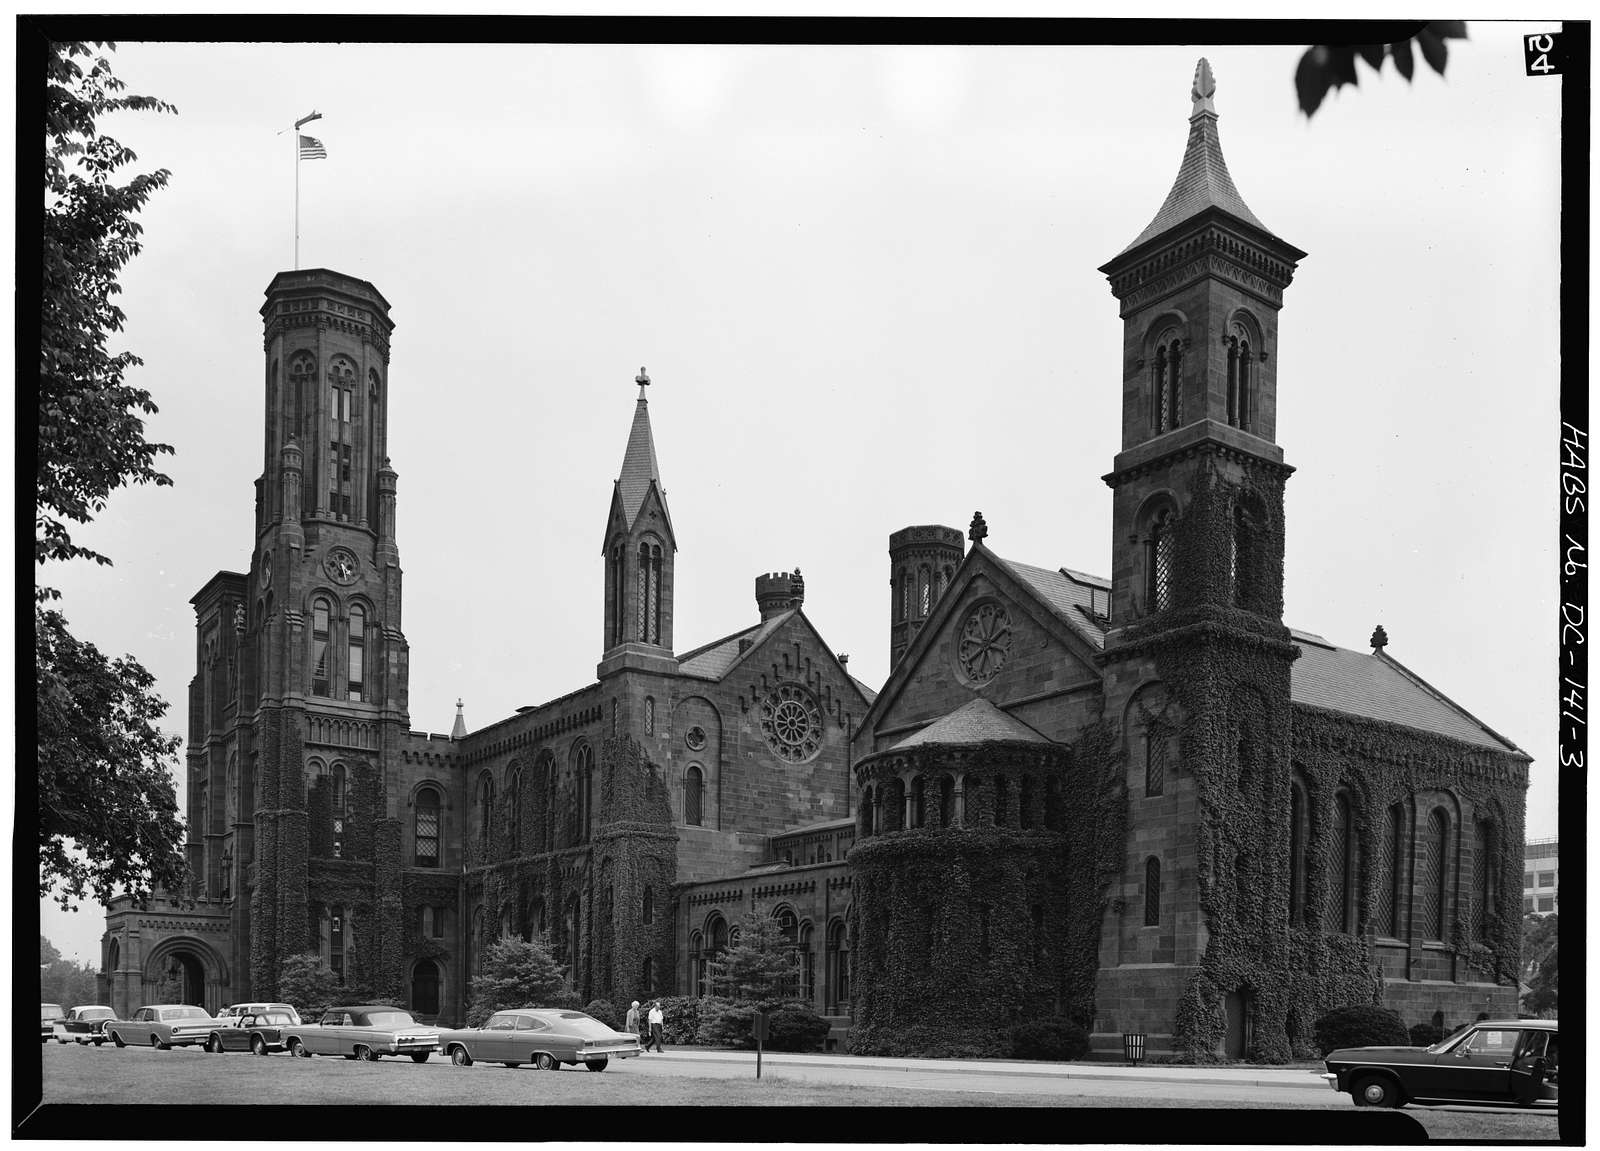 Smithsonian Institution Building, 1000 Jefferson Drive, between Ninth & Twelfth Streets, Southwest, Washington, District of Columbia, DC